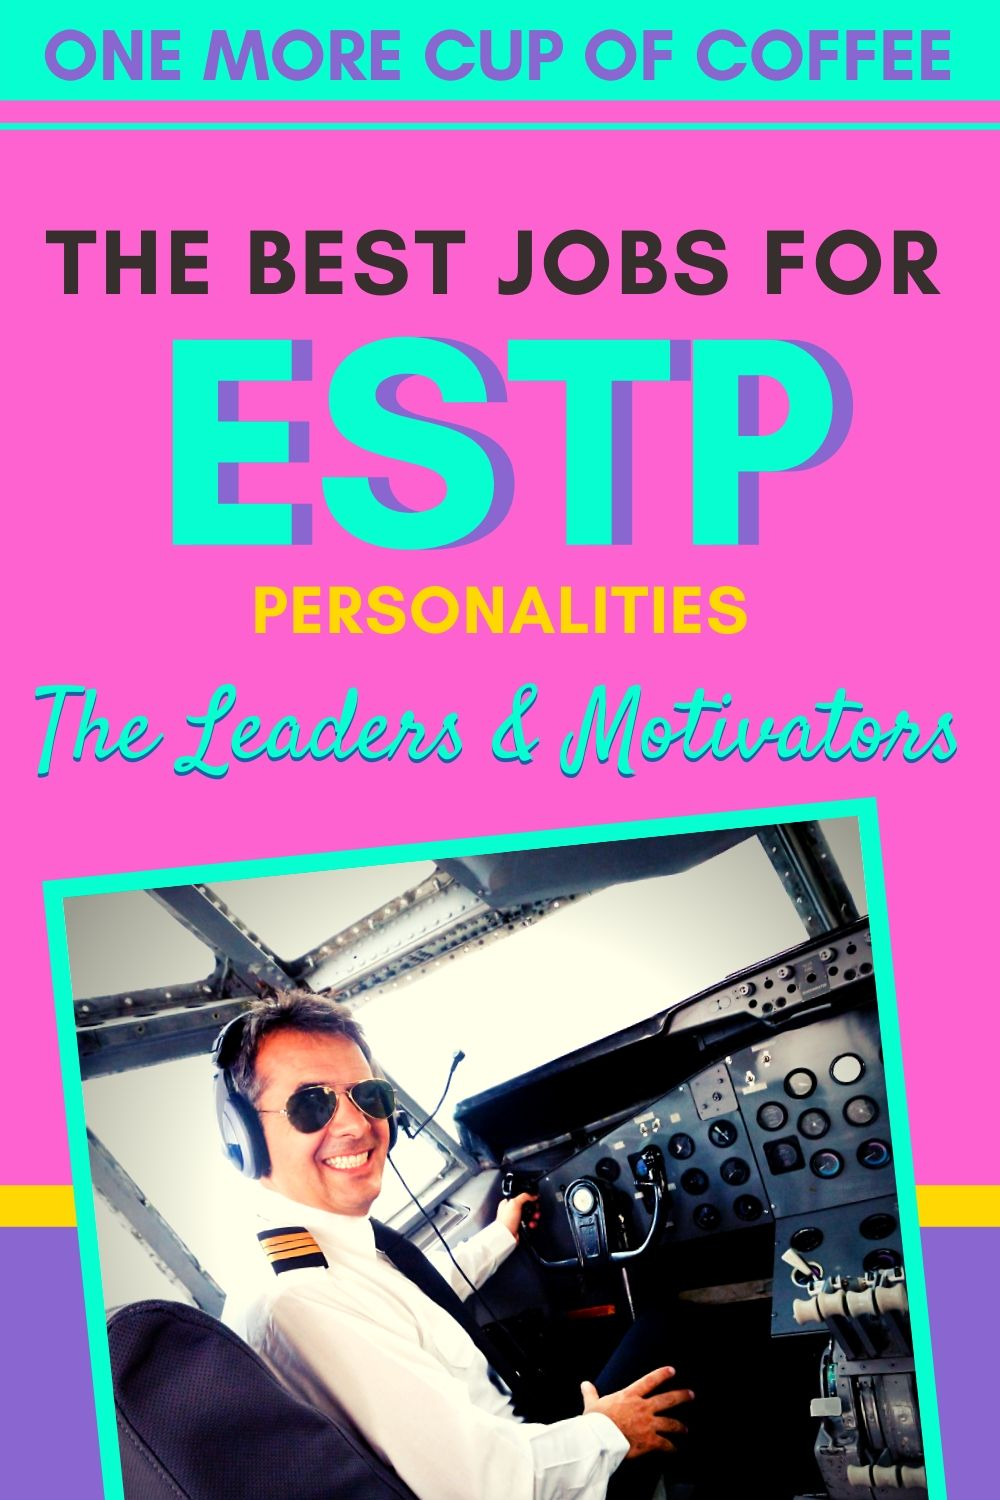 Pilot sitting in a cockpit smiling representing jobs for an ESTP personality.